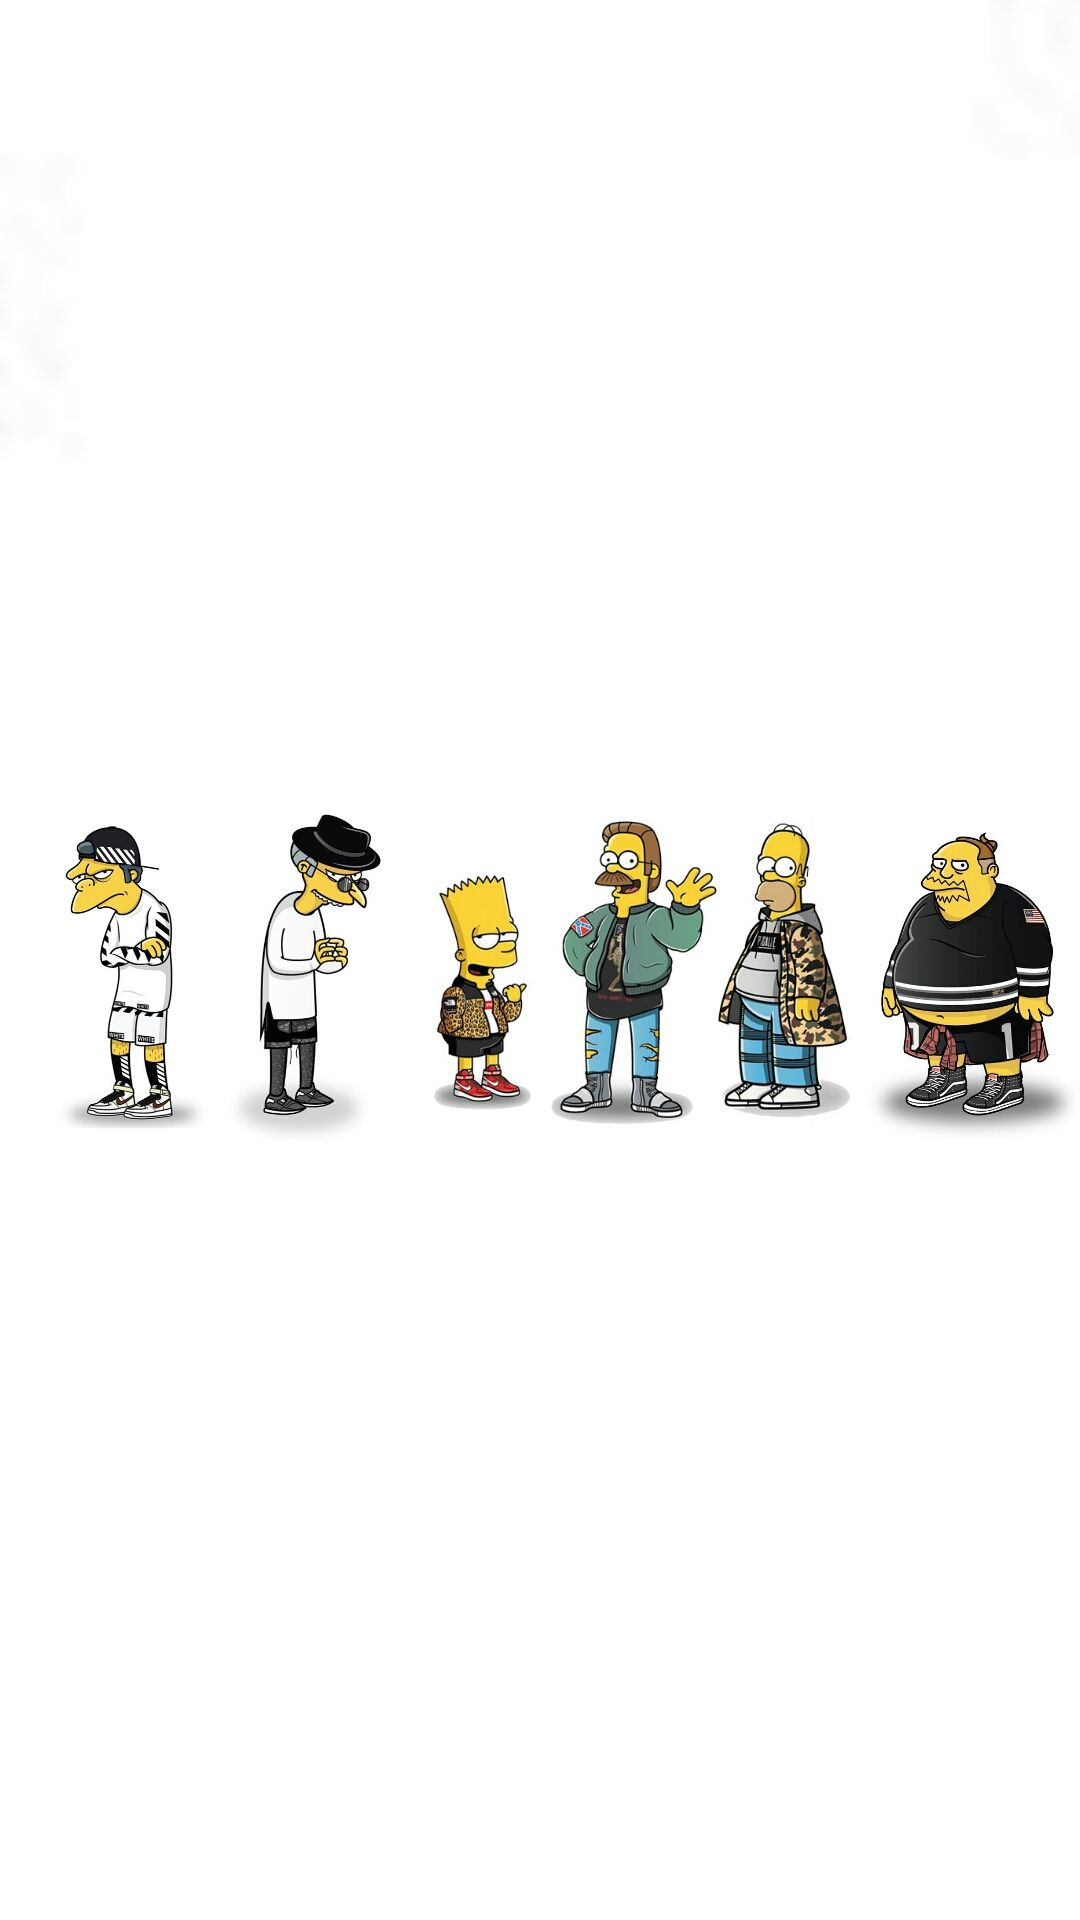 1080x1920 I made a wallpaper of all the Simpsons characters. : streetwear